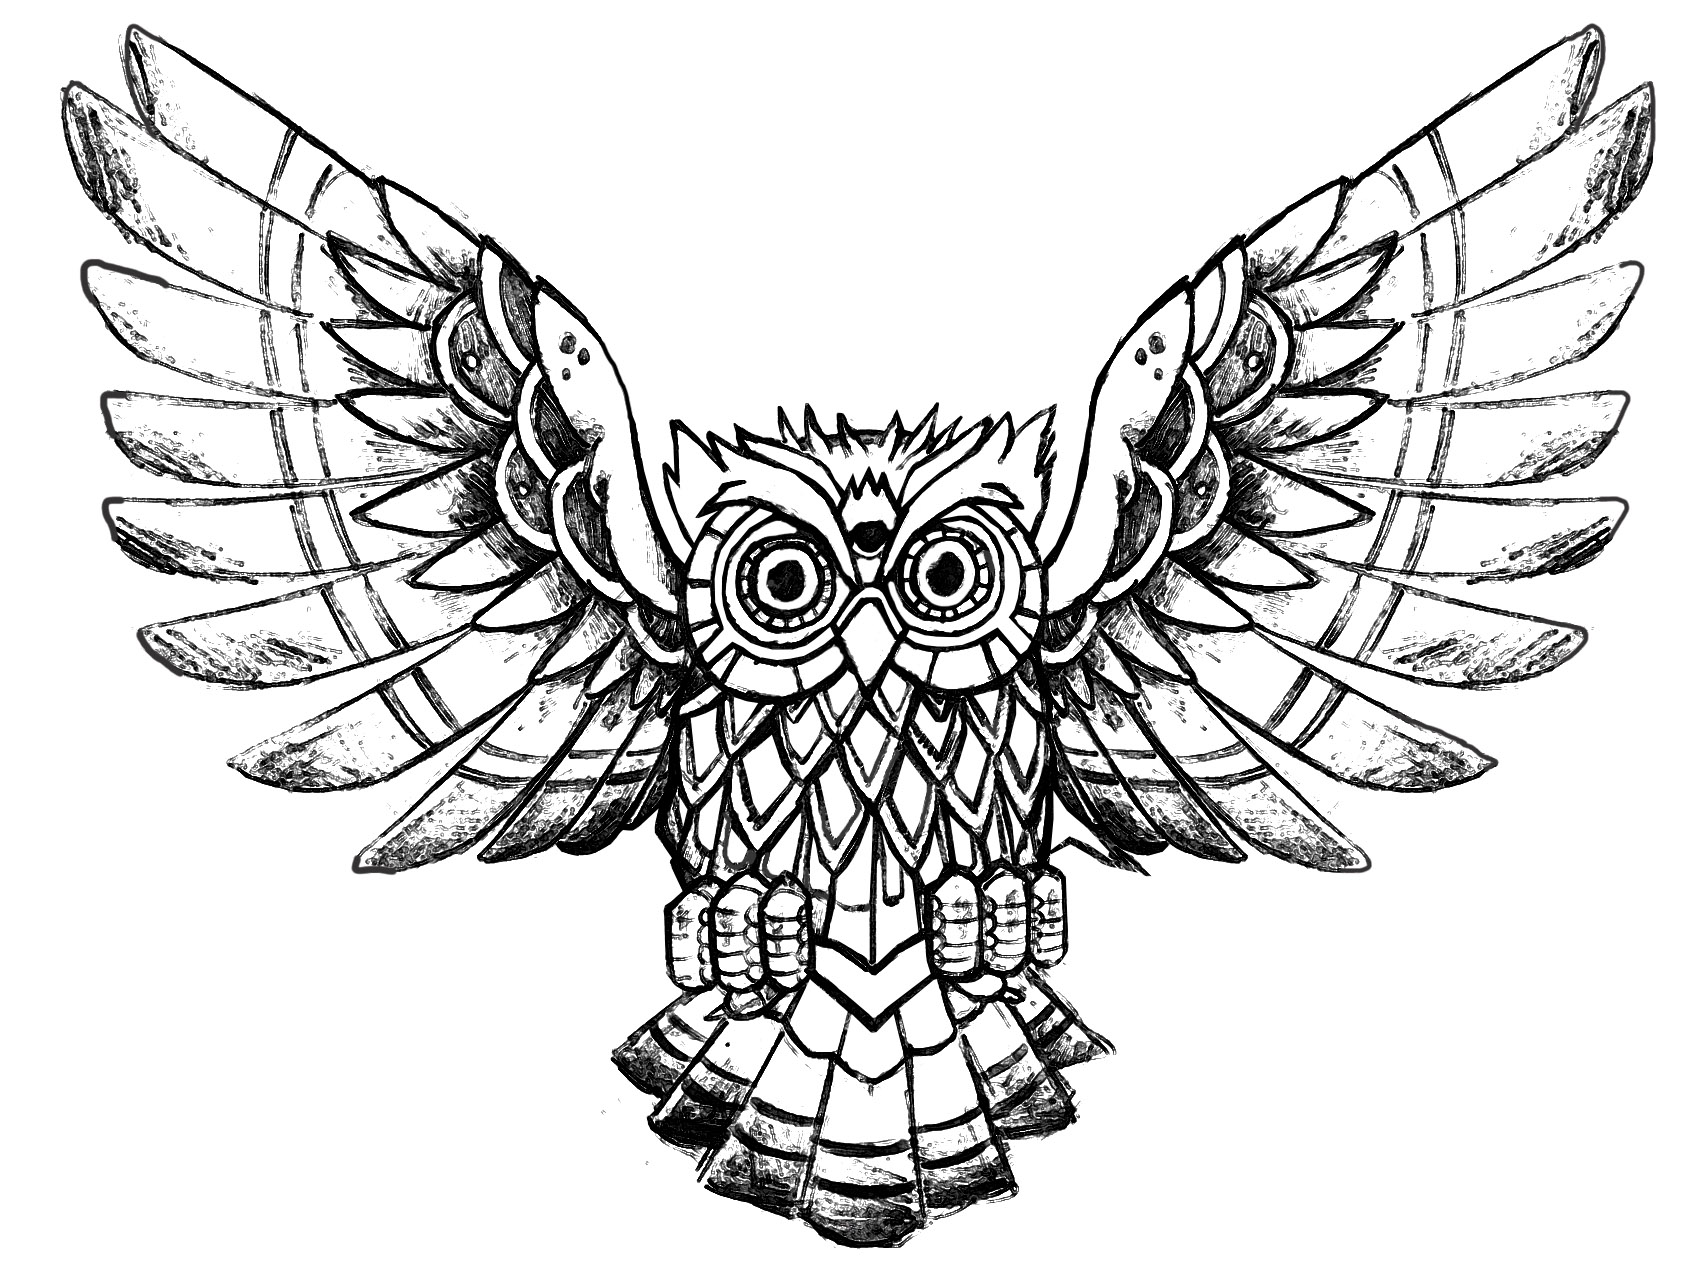 Owls for children - Owls - Free printable Coloring pages for kids